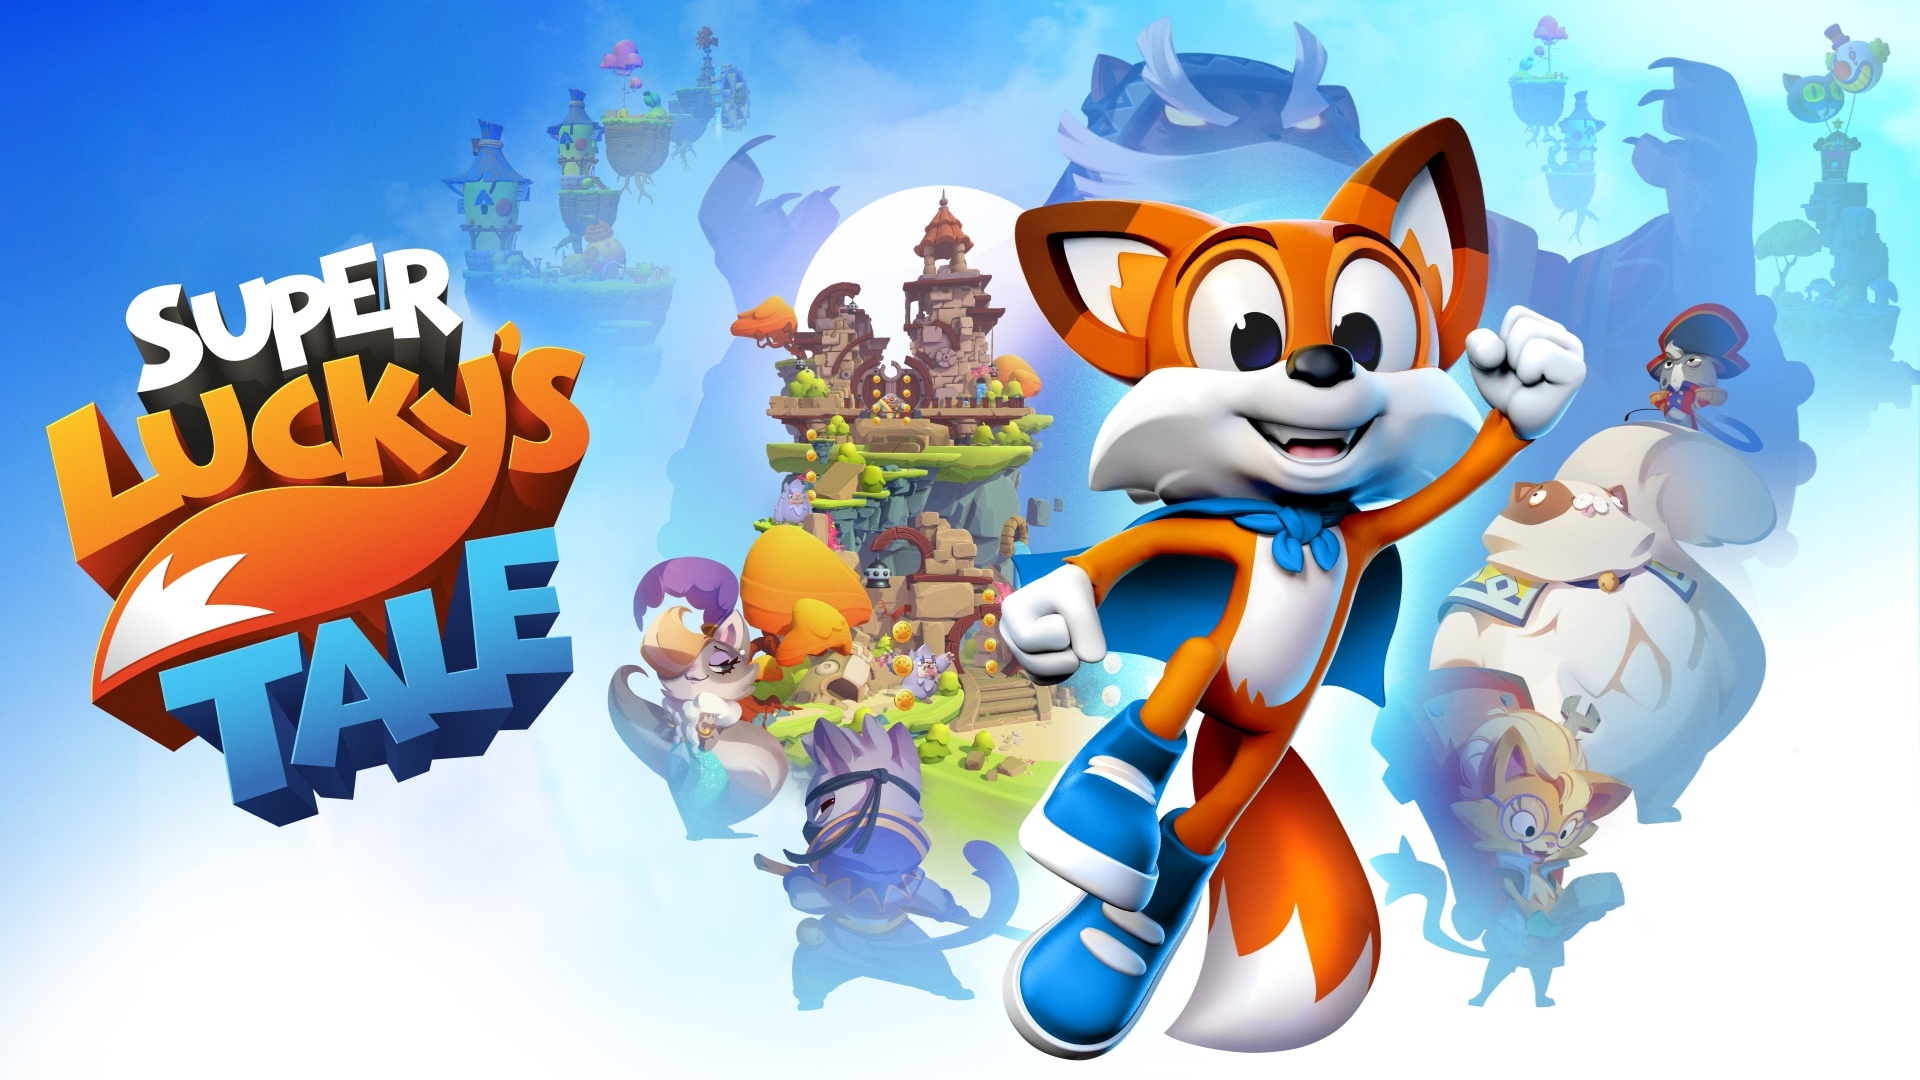 Super Lucky S Tale Pc Xbox One Win10 Xbox One X Hra Od Playful Corp Sector